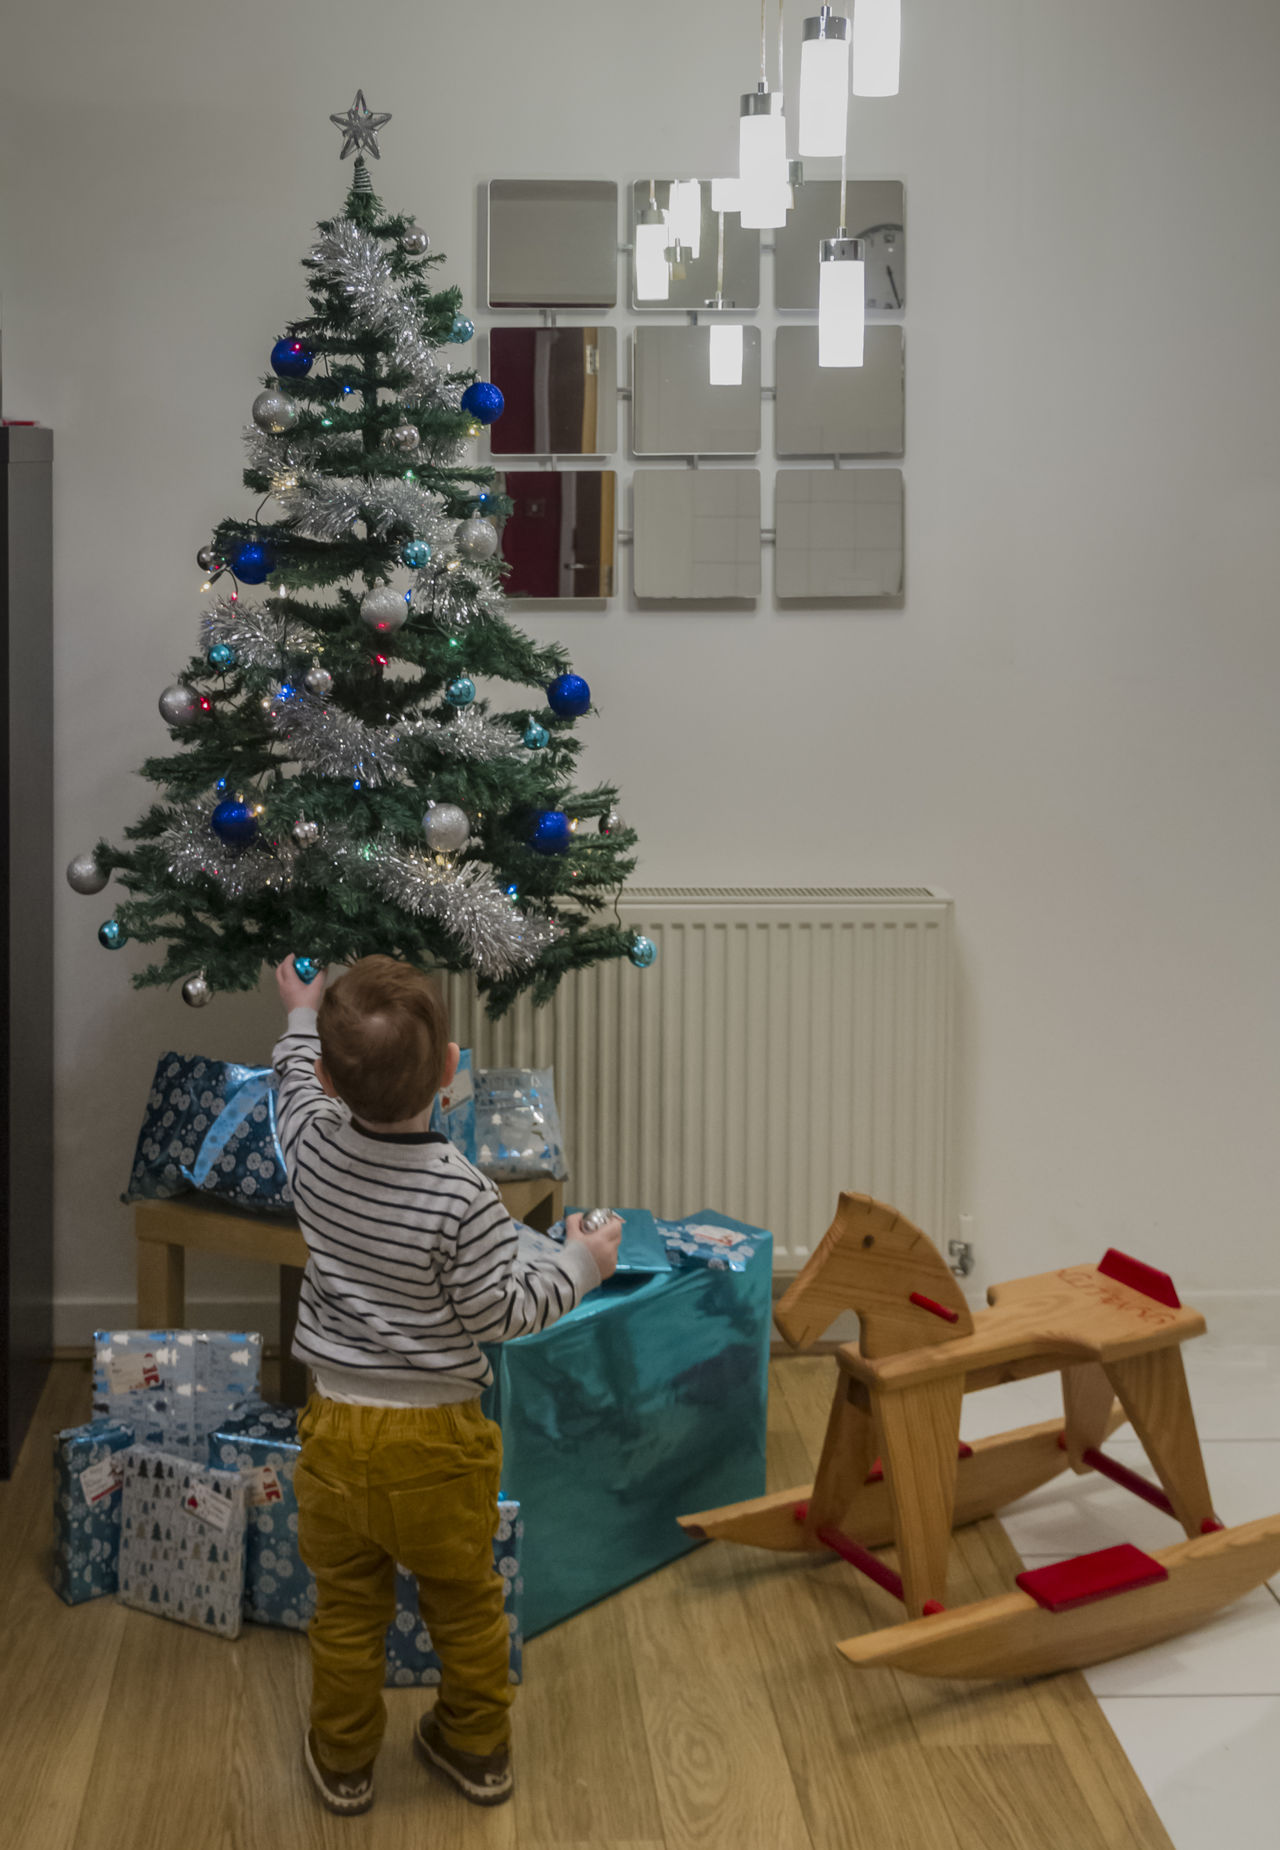 Anticipation Celebration Child Childhood Children Only Christmas Christmas Decoration Christmas Present Christmas Stocking Christmas Tree Domestic Life Full Length Gift Holiday - Event Home Interior Indoors  Living Room Males  My Year My View One Person People Toddler  Tradition Tree